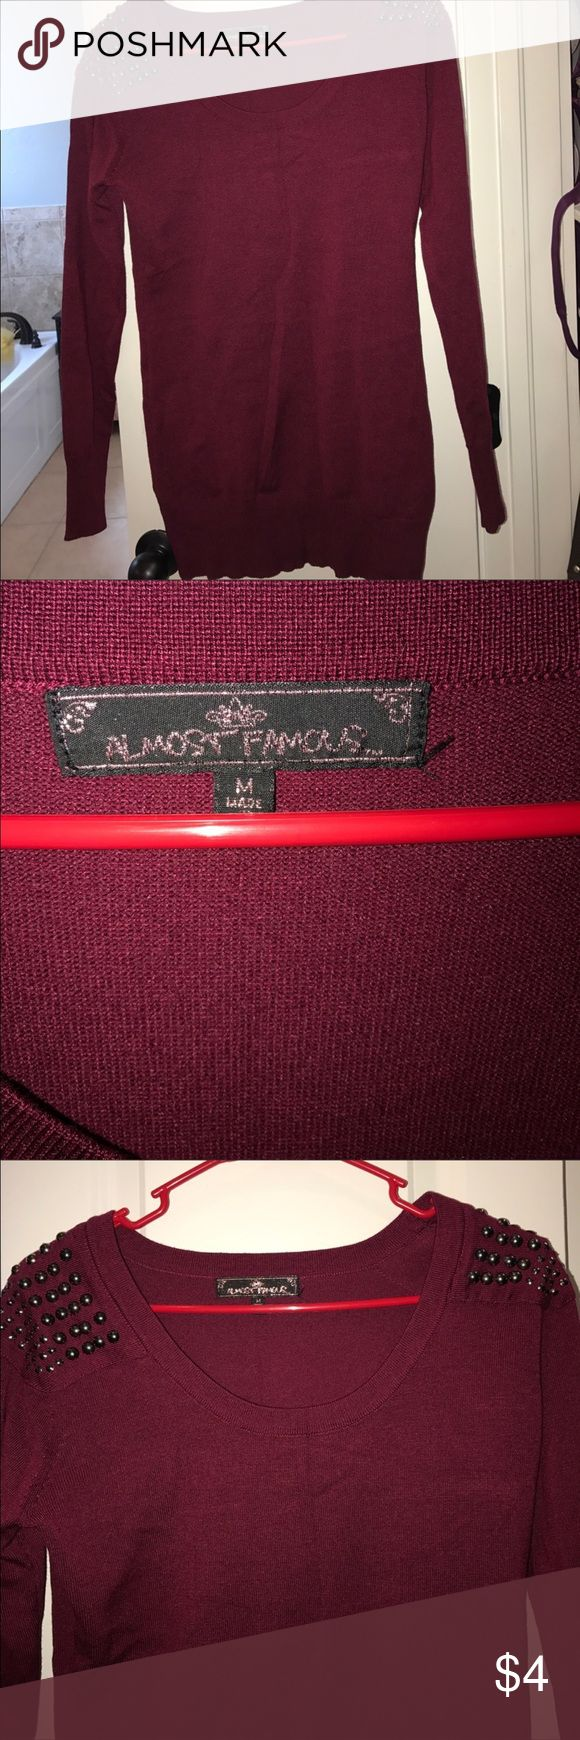 EUC maroon sweater with embellished shoulders Only worn a couple of times Almost Famous Sweaters Crew & Scoop Necks